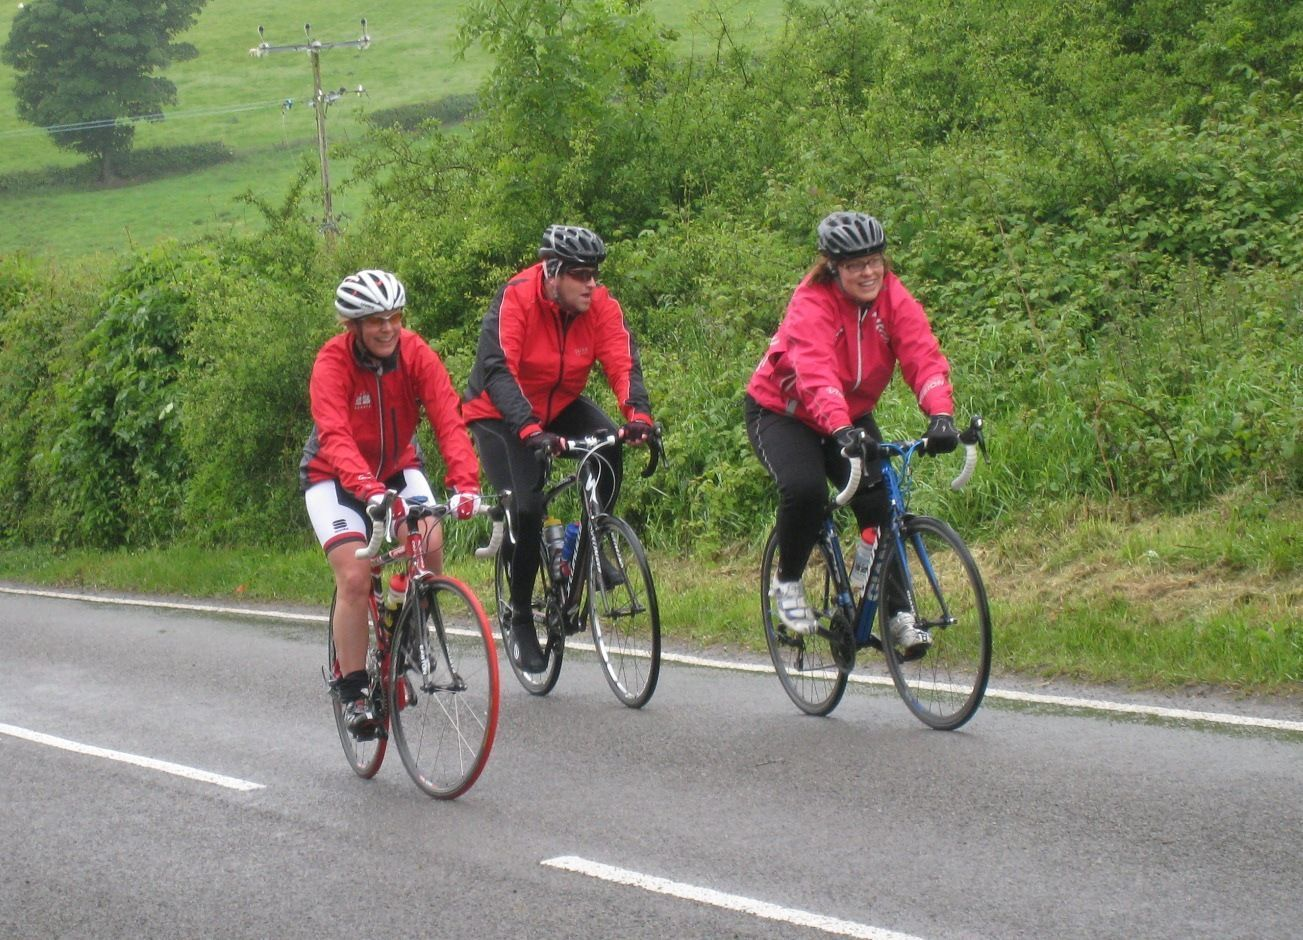 Chilterns Road Cycling Weekend 5.JPG - UK - Chilterns - Guided Road Cycling Weekend - Road Cycling